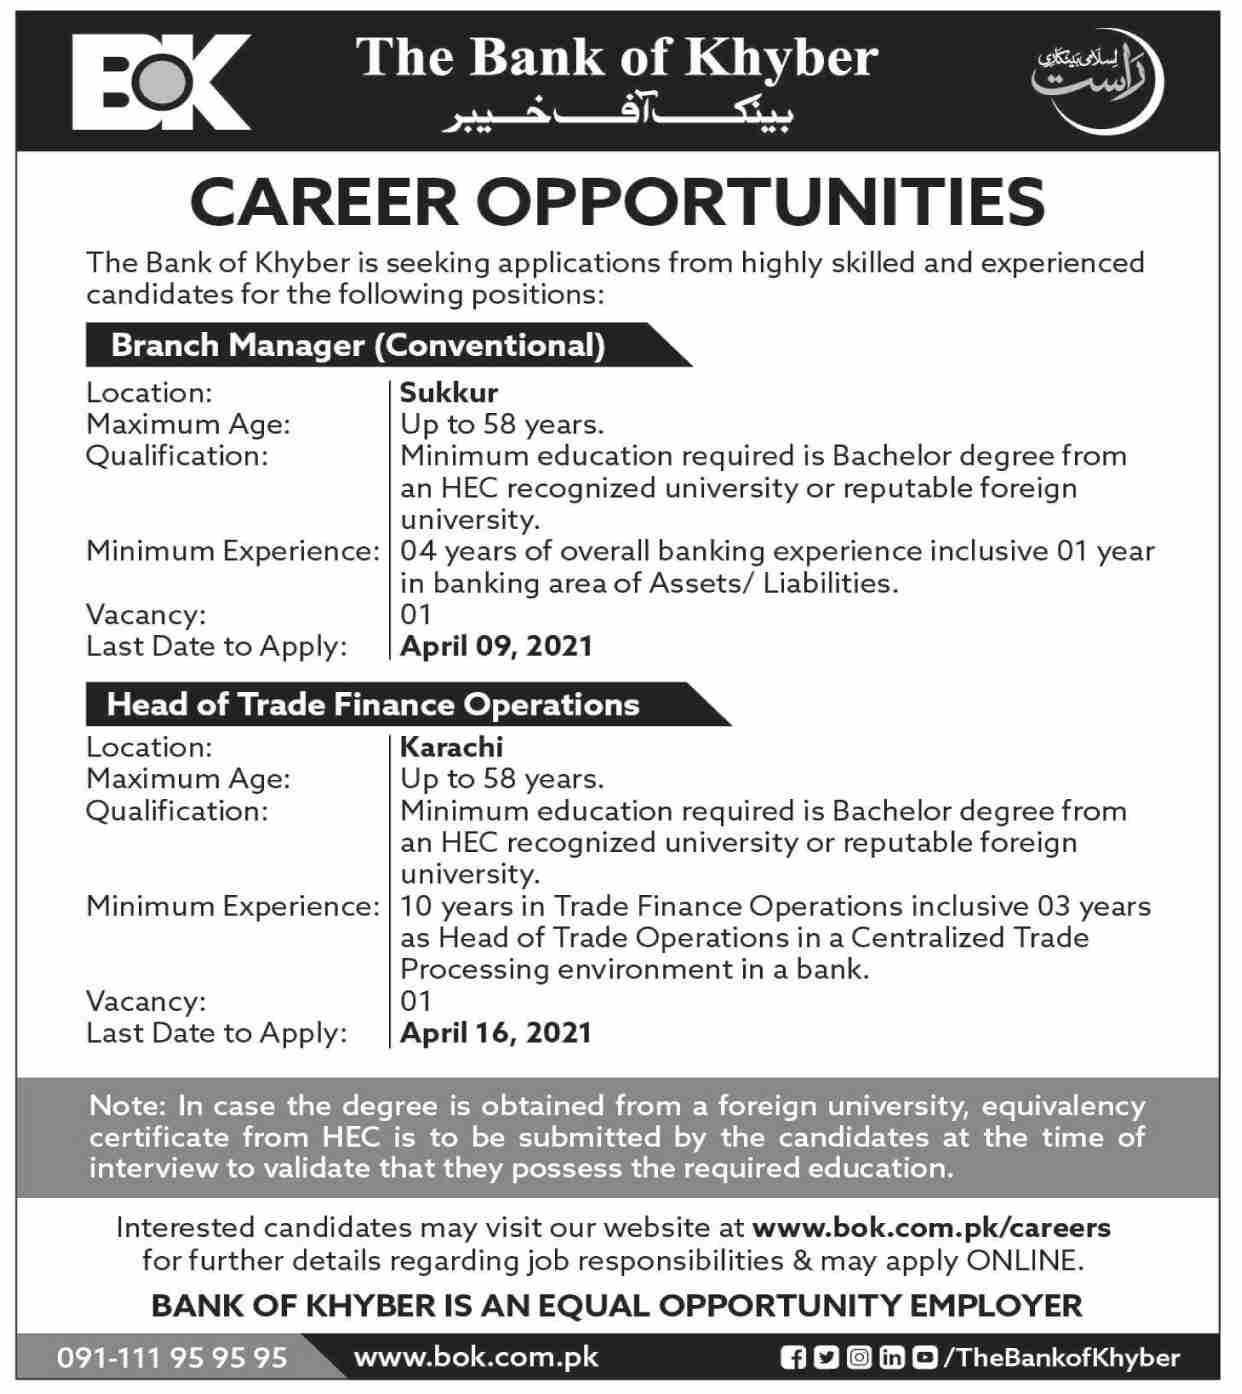 Jobs in The Bank of Khyber